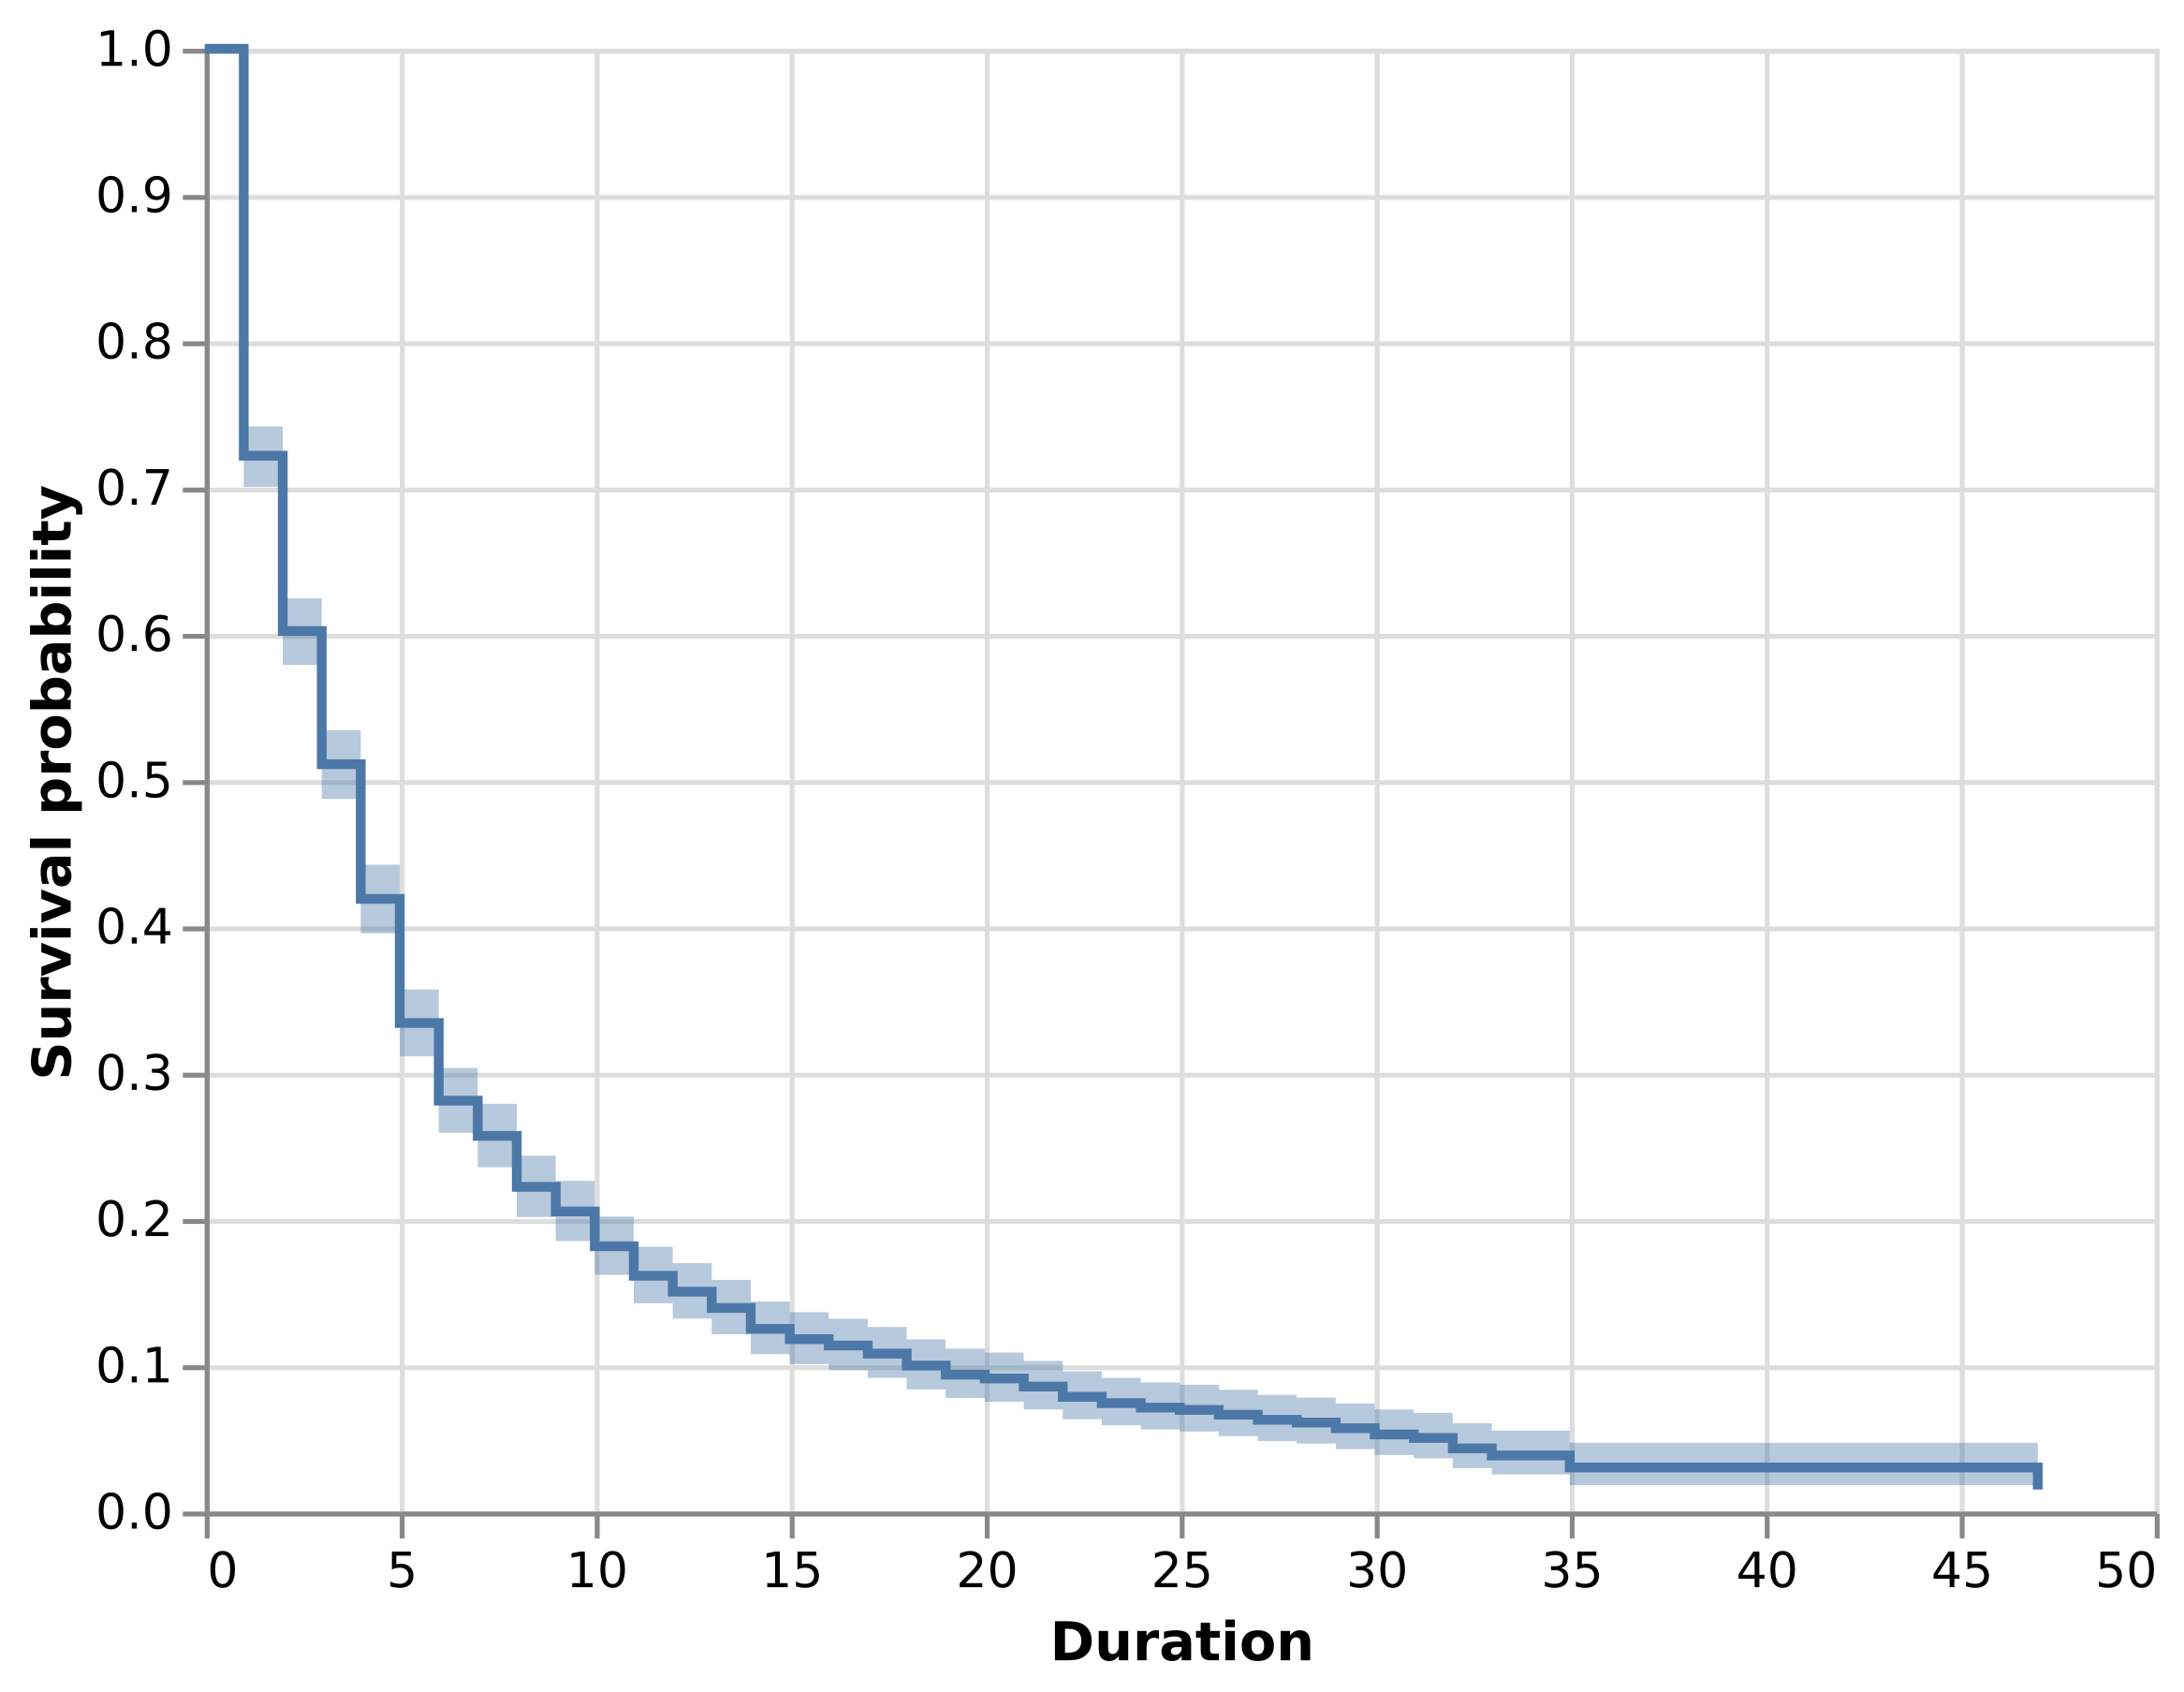 Altair version of the survival curve